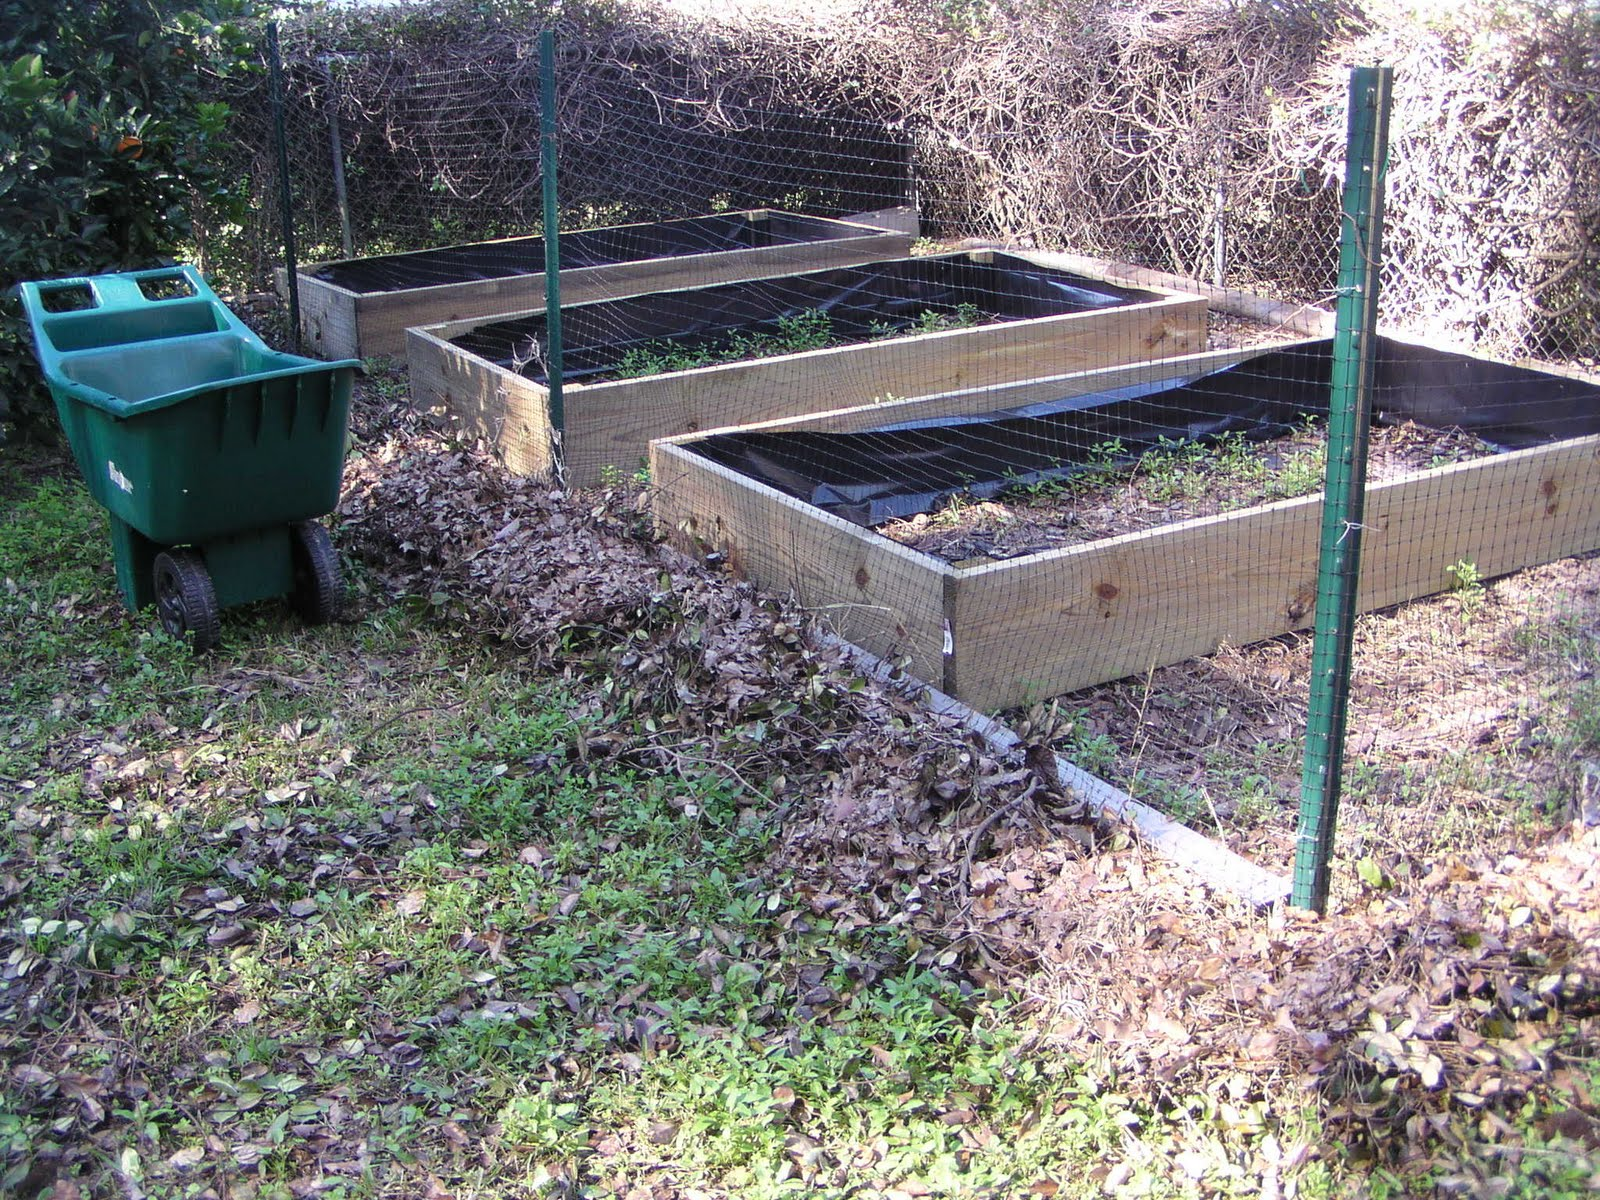 Florida gardening zone 9 three 4 x 8 raised beds - Pressure treated wood for garden beds ...